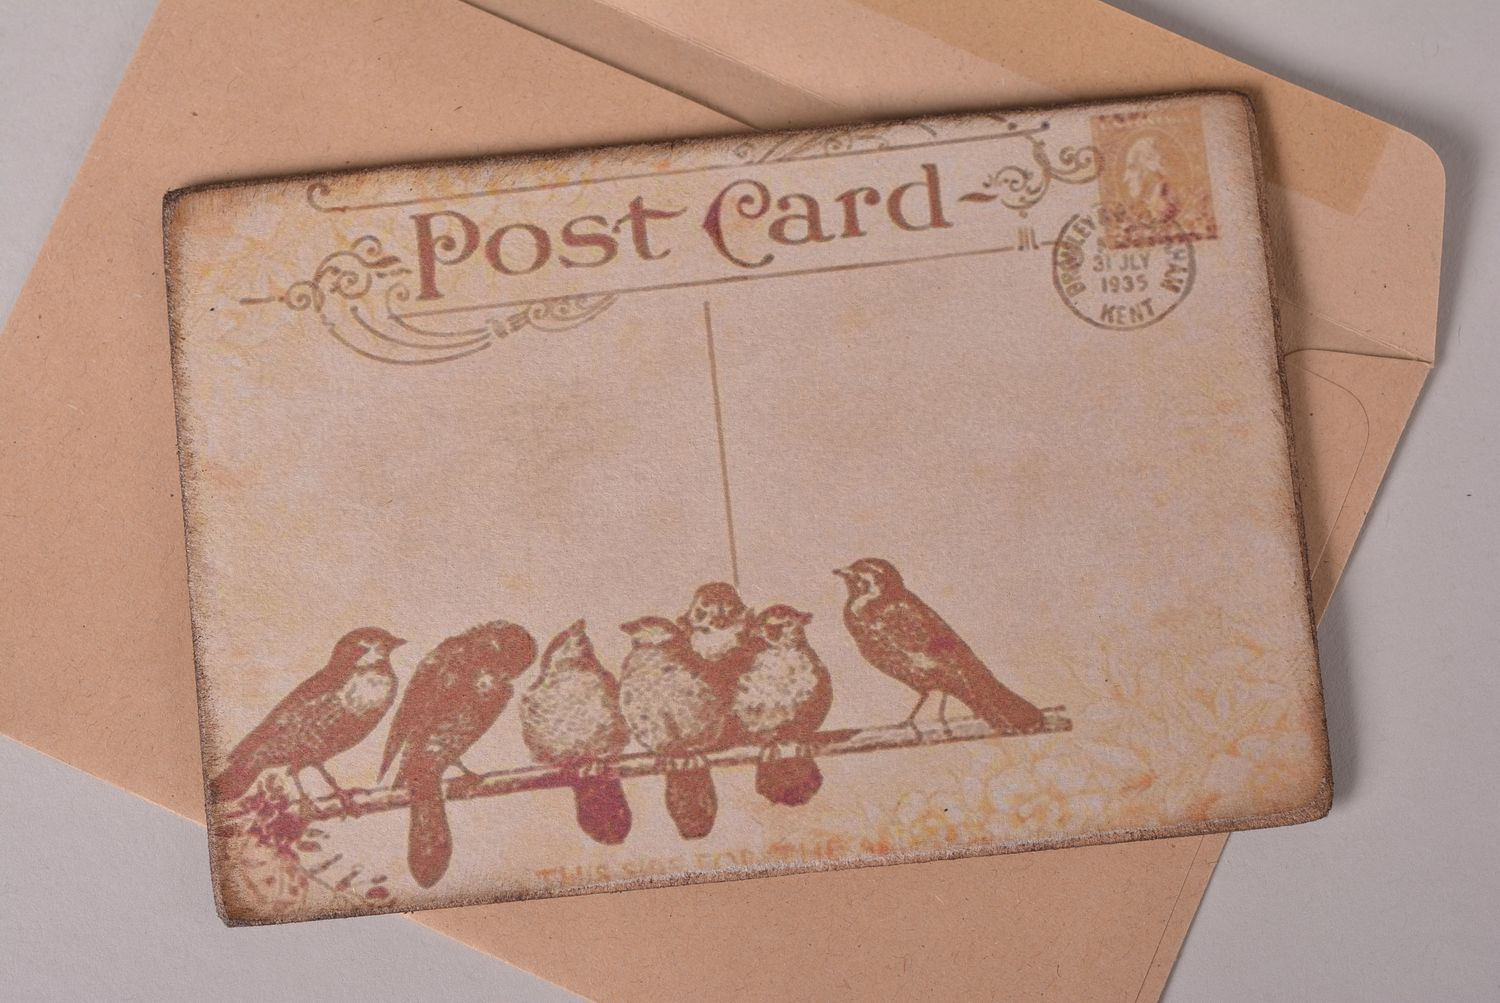 Unusual handmade post card greeting cards vintage card birthday gift ideas - MADEheart.com